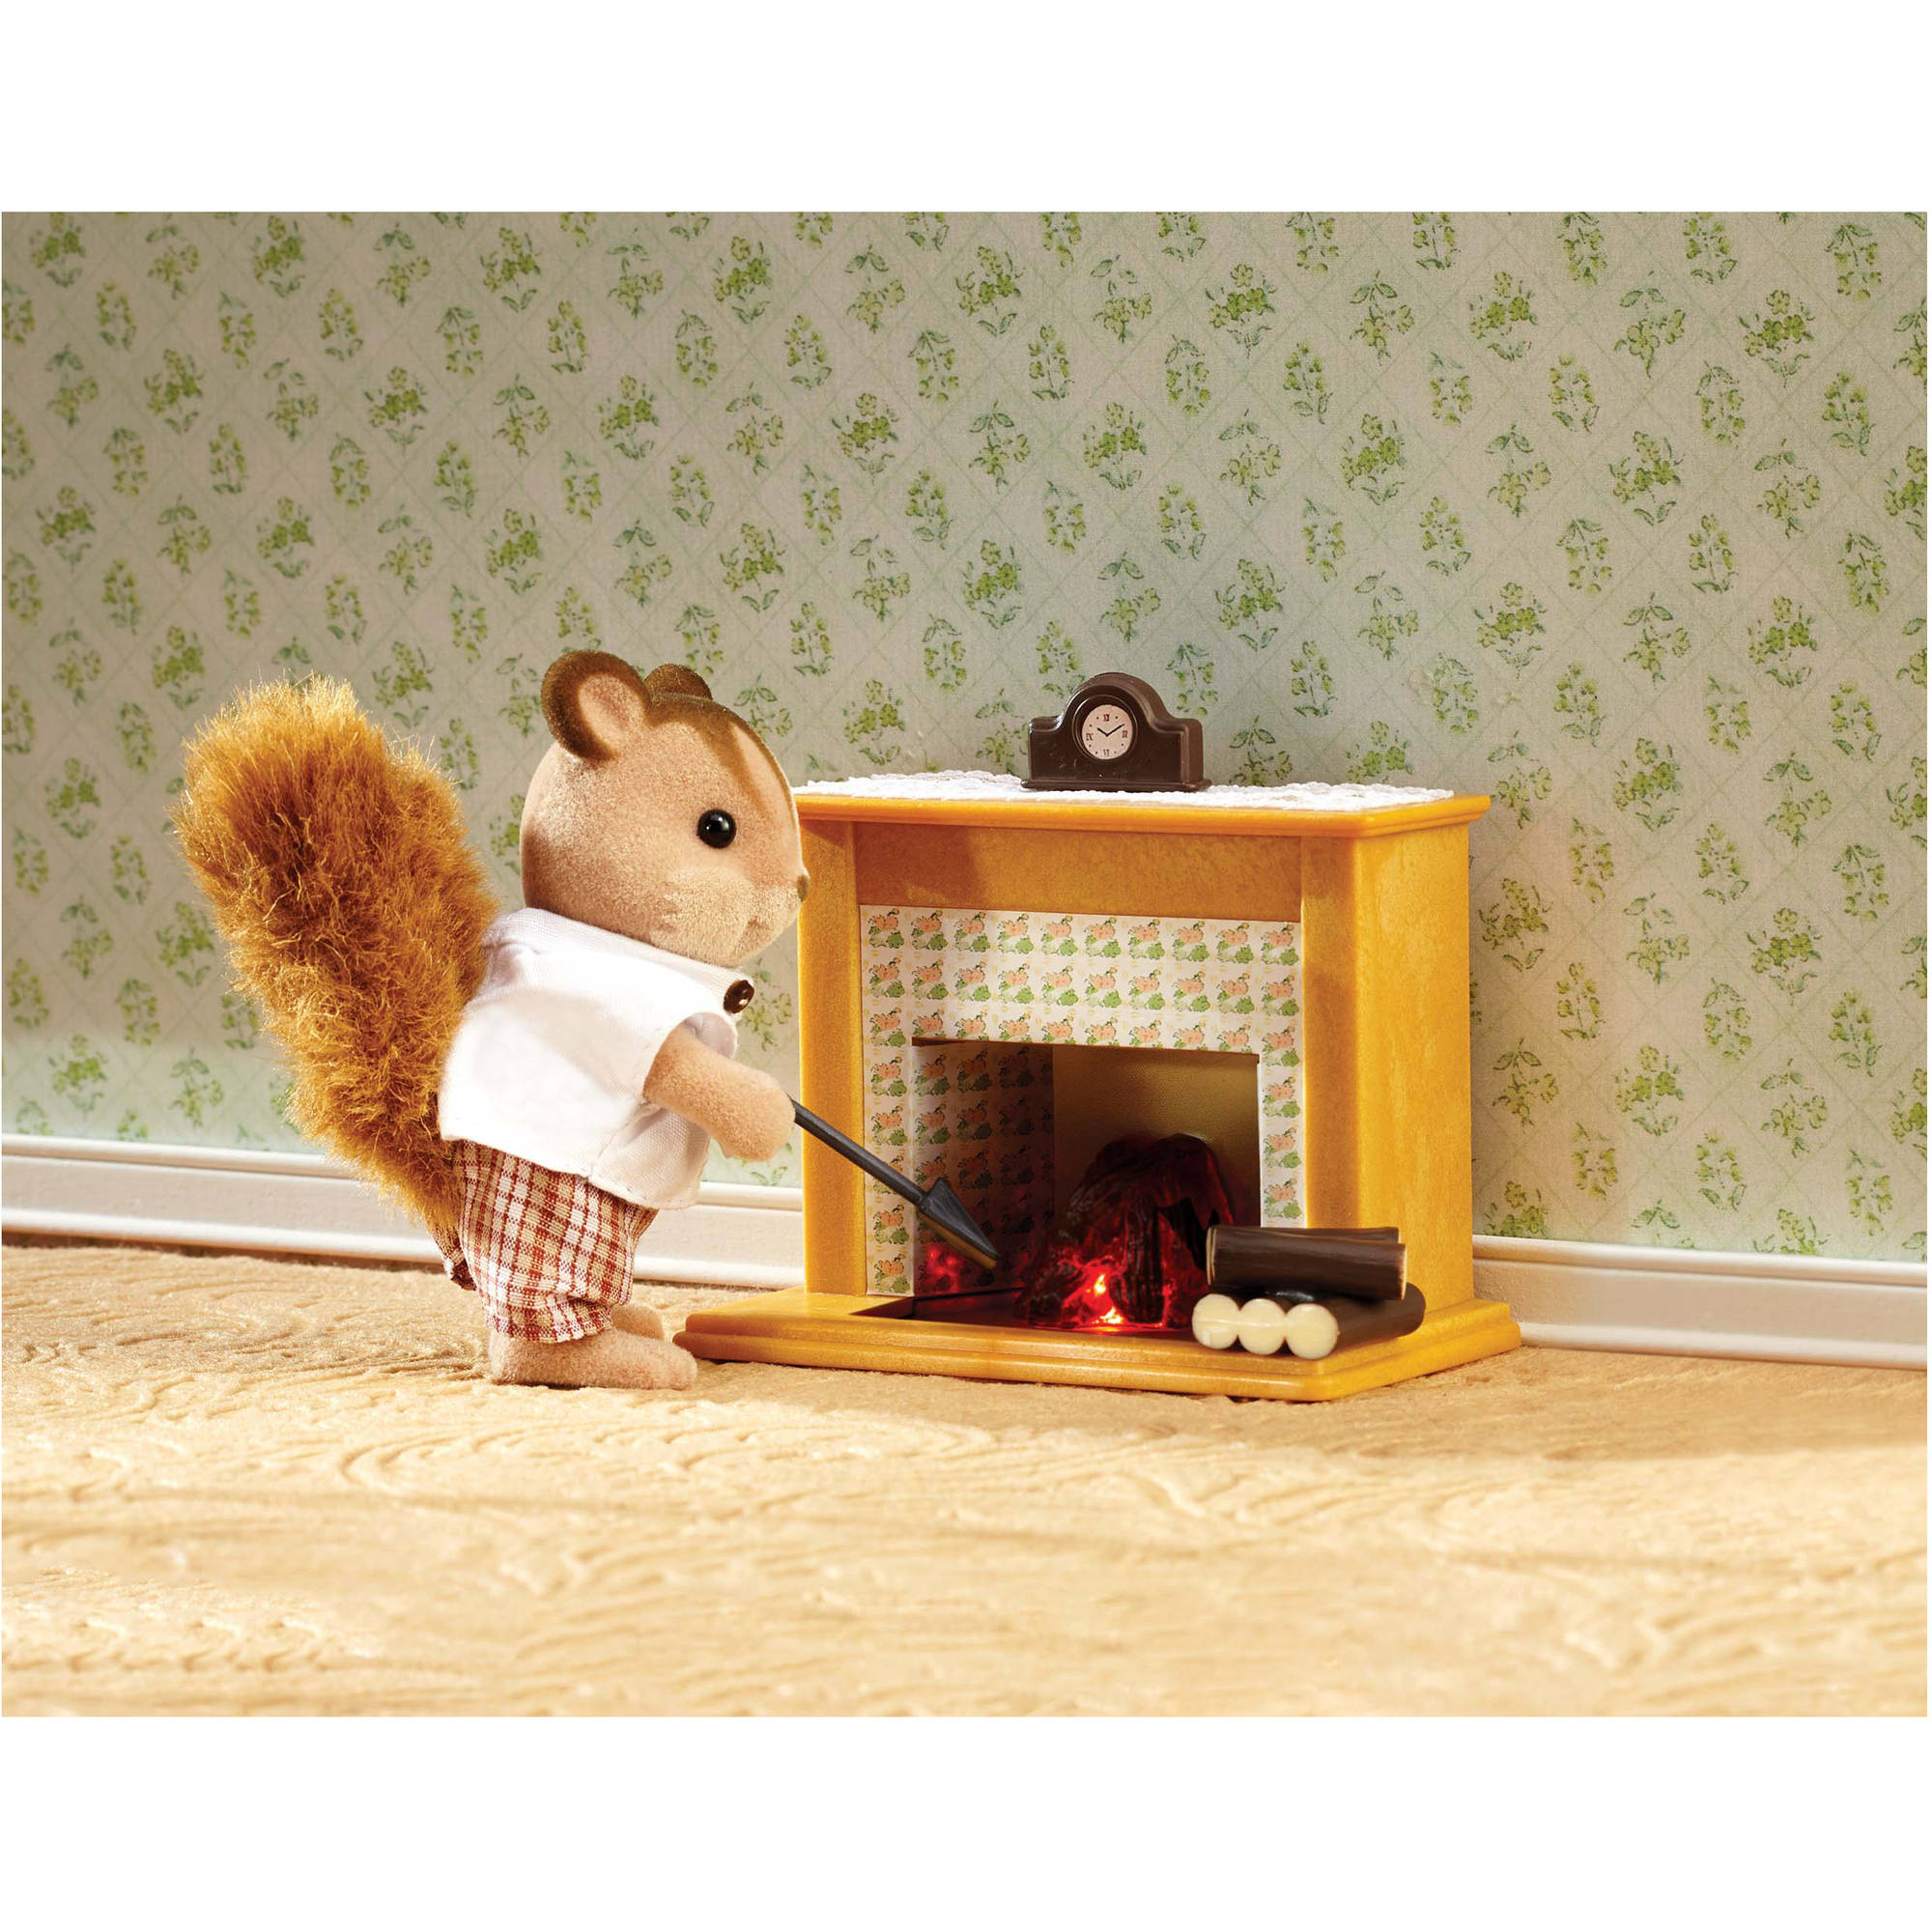 Calico Critters Deluxe Living Room Set Walmart regarding Calico Critters Deluxe Living Room Set